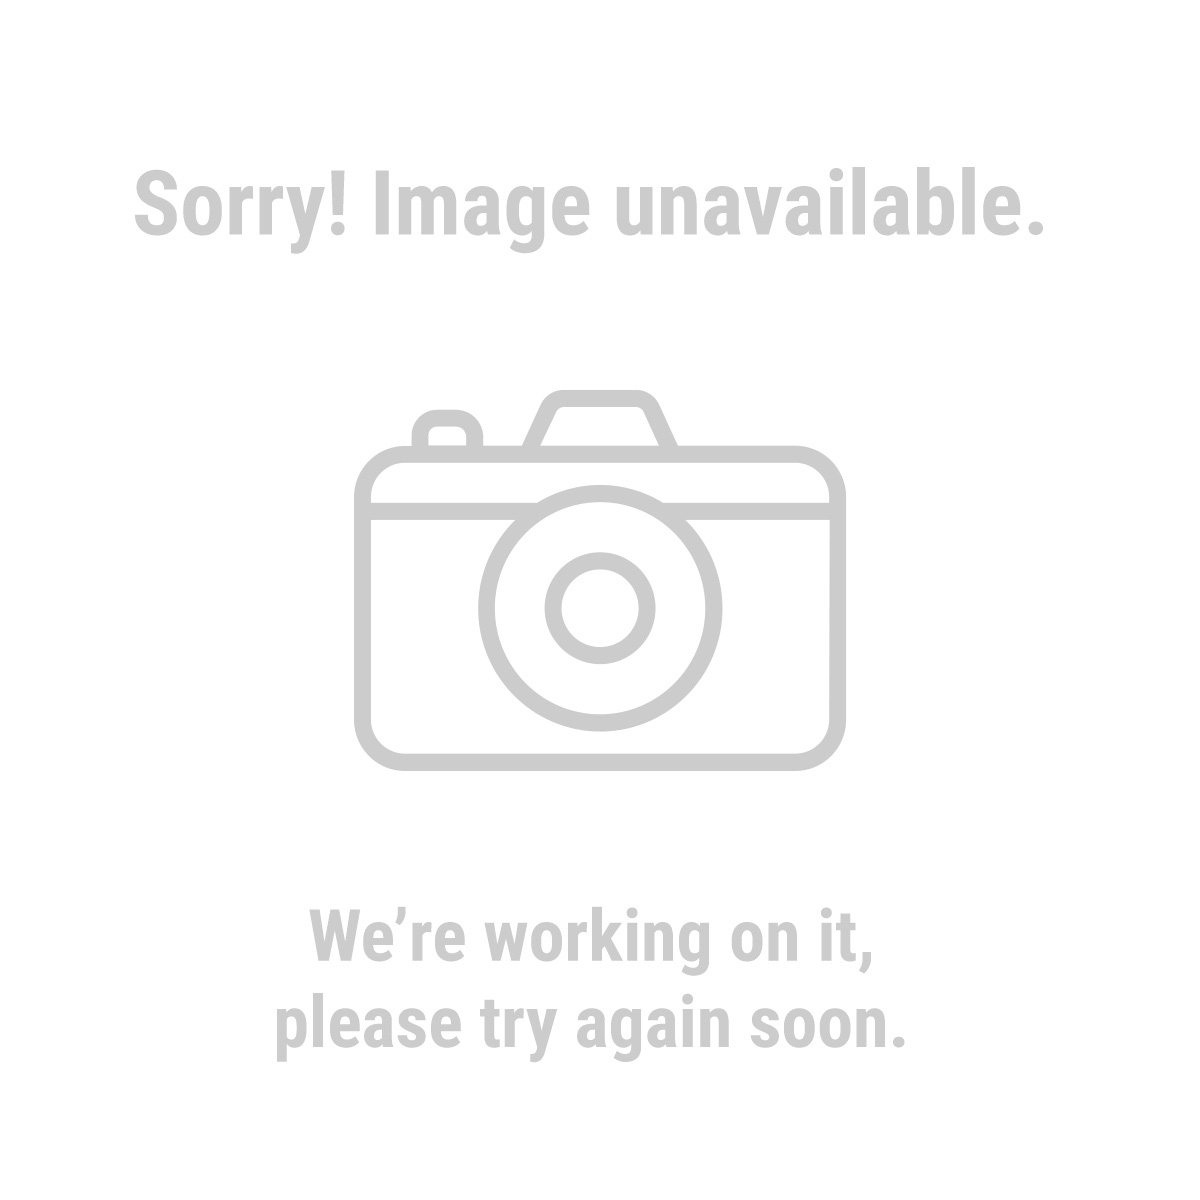 CoverPro 62858 10 ft. x 20 ft. Portable Car Canopy